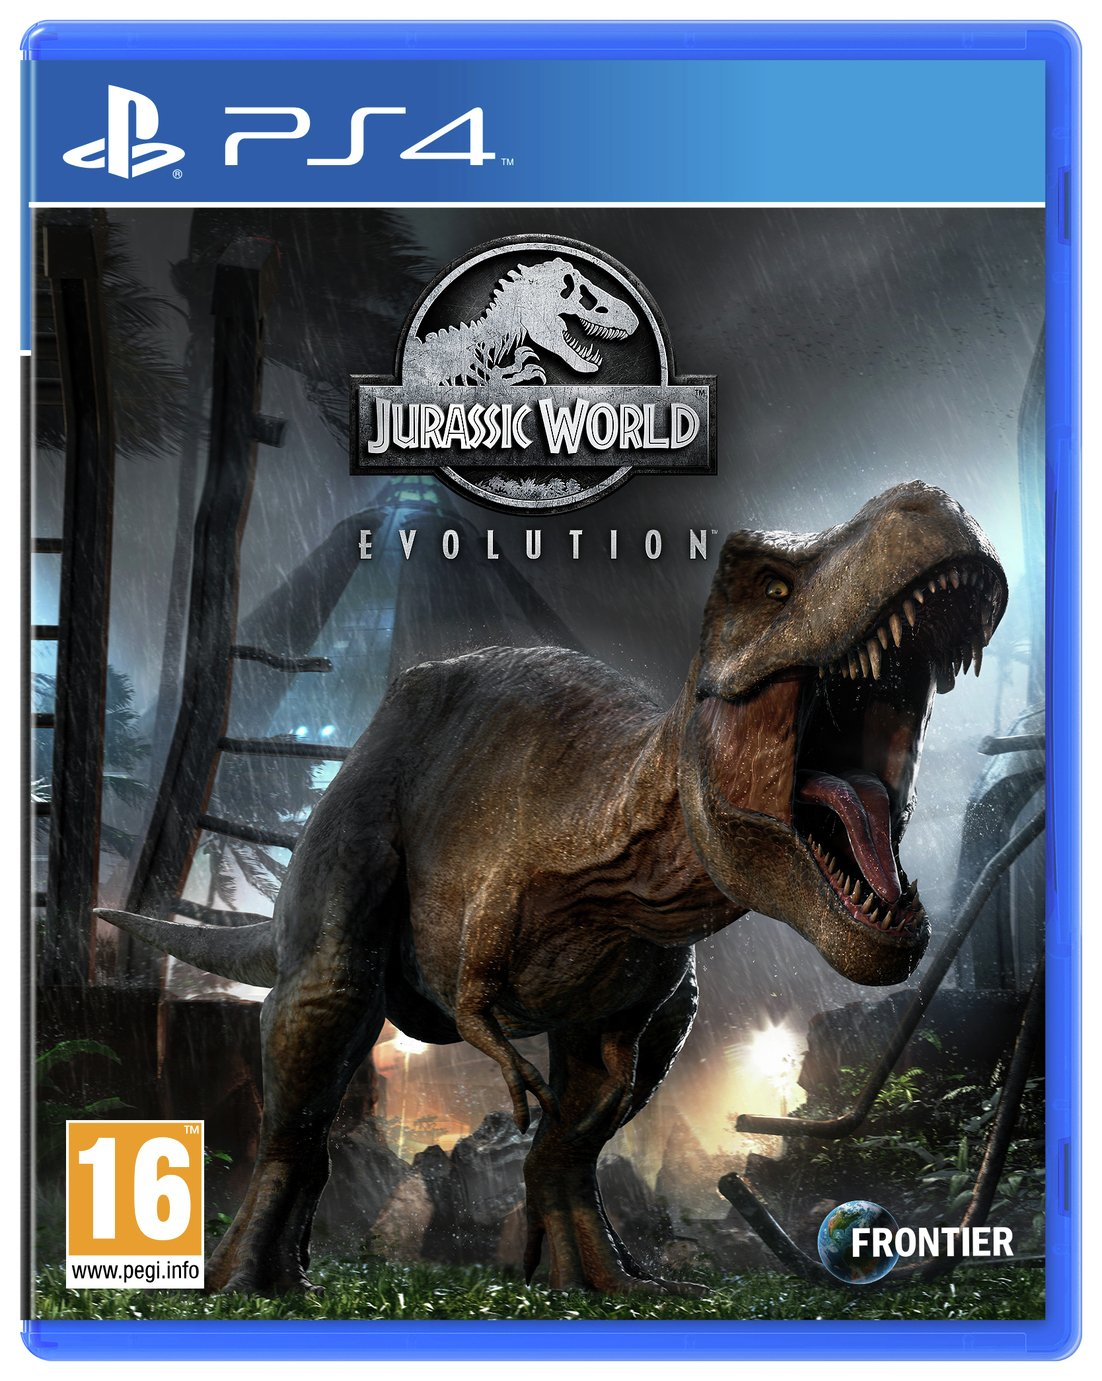 8e5abcb194 Jurassic World: Find offers online and compare prices at Wunderstore